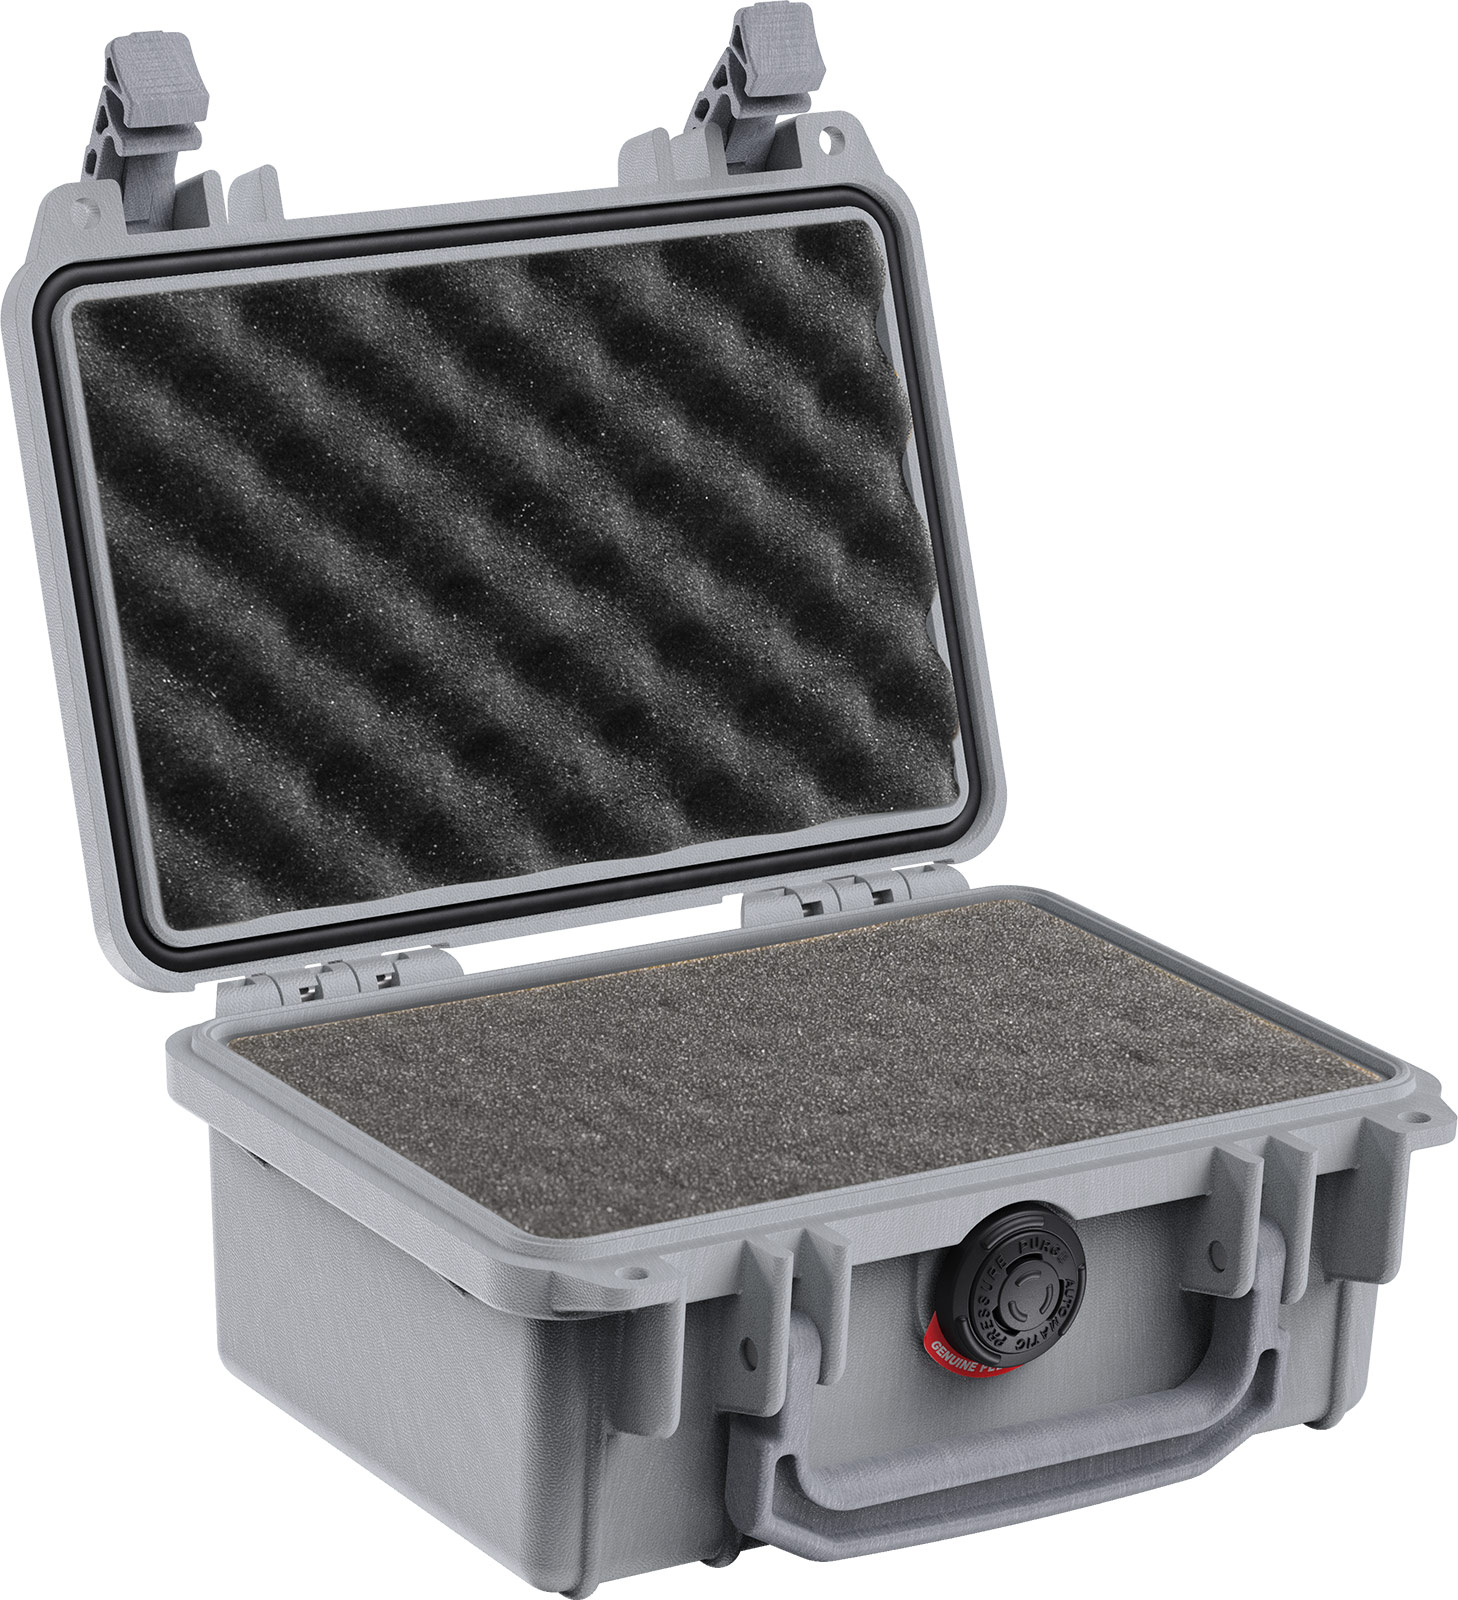 1120 Protector Case | Pelican Official Store